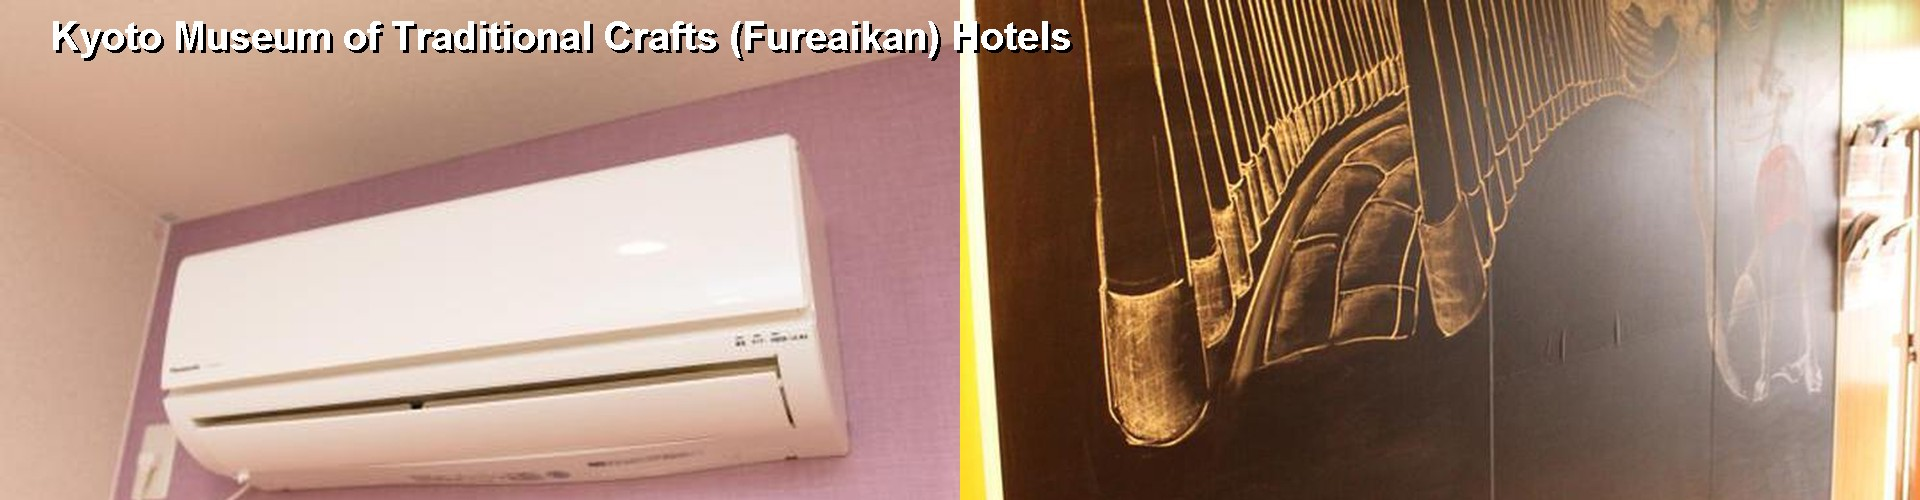 3 Best Hotels near Kyoto Museum of Traditional Crafts (Fureaikan)